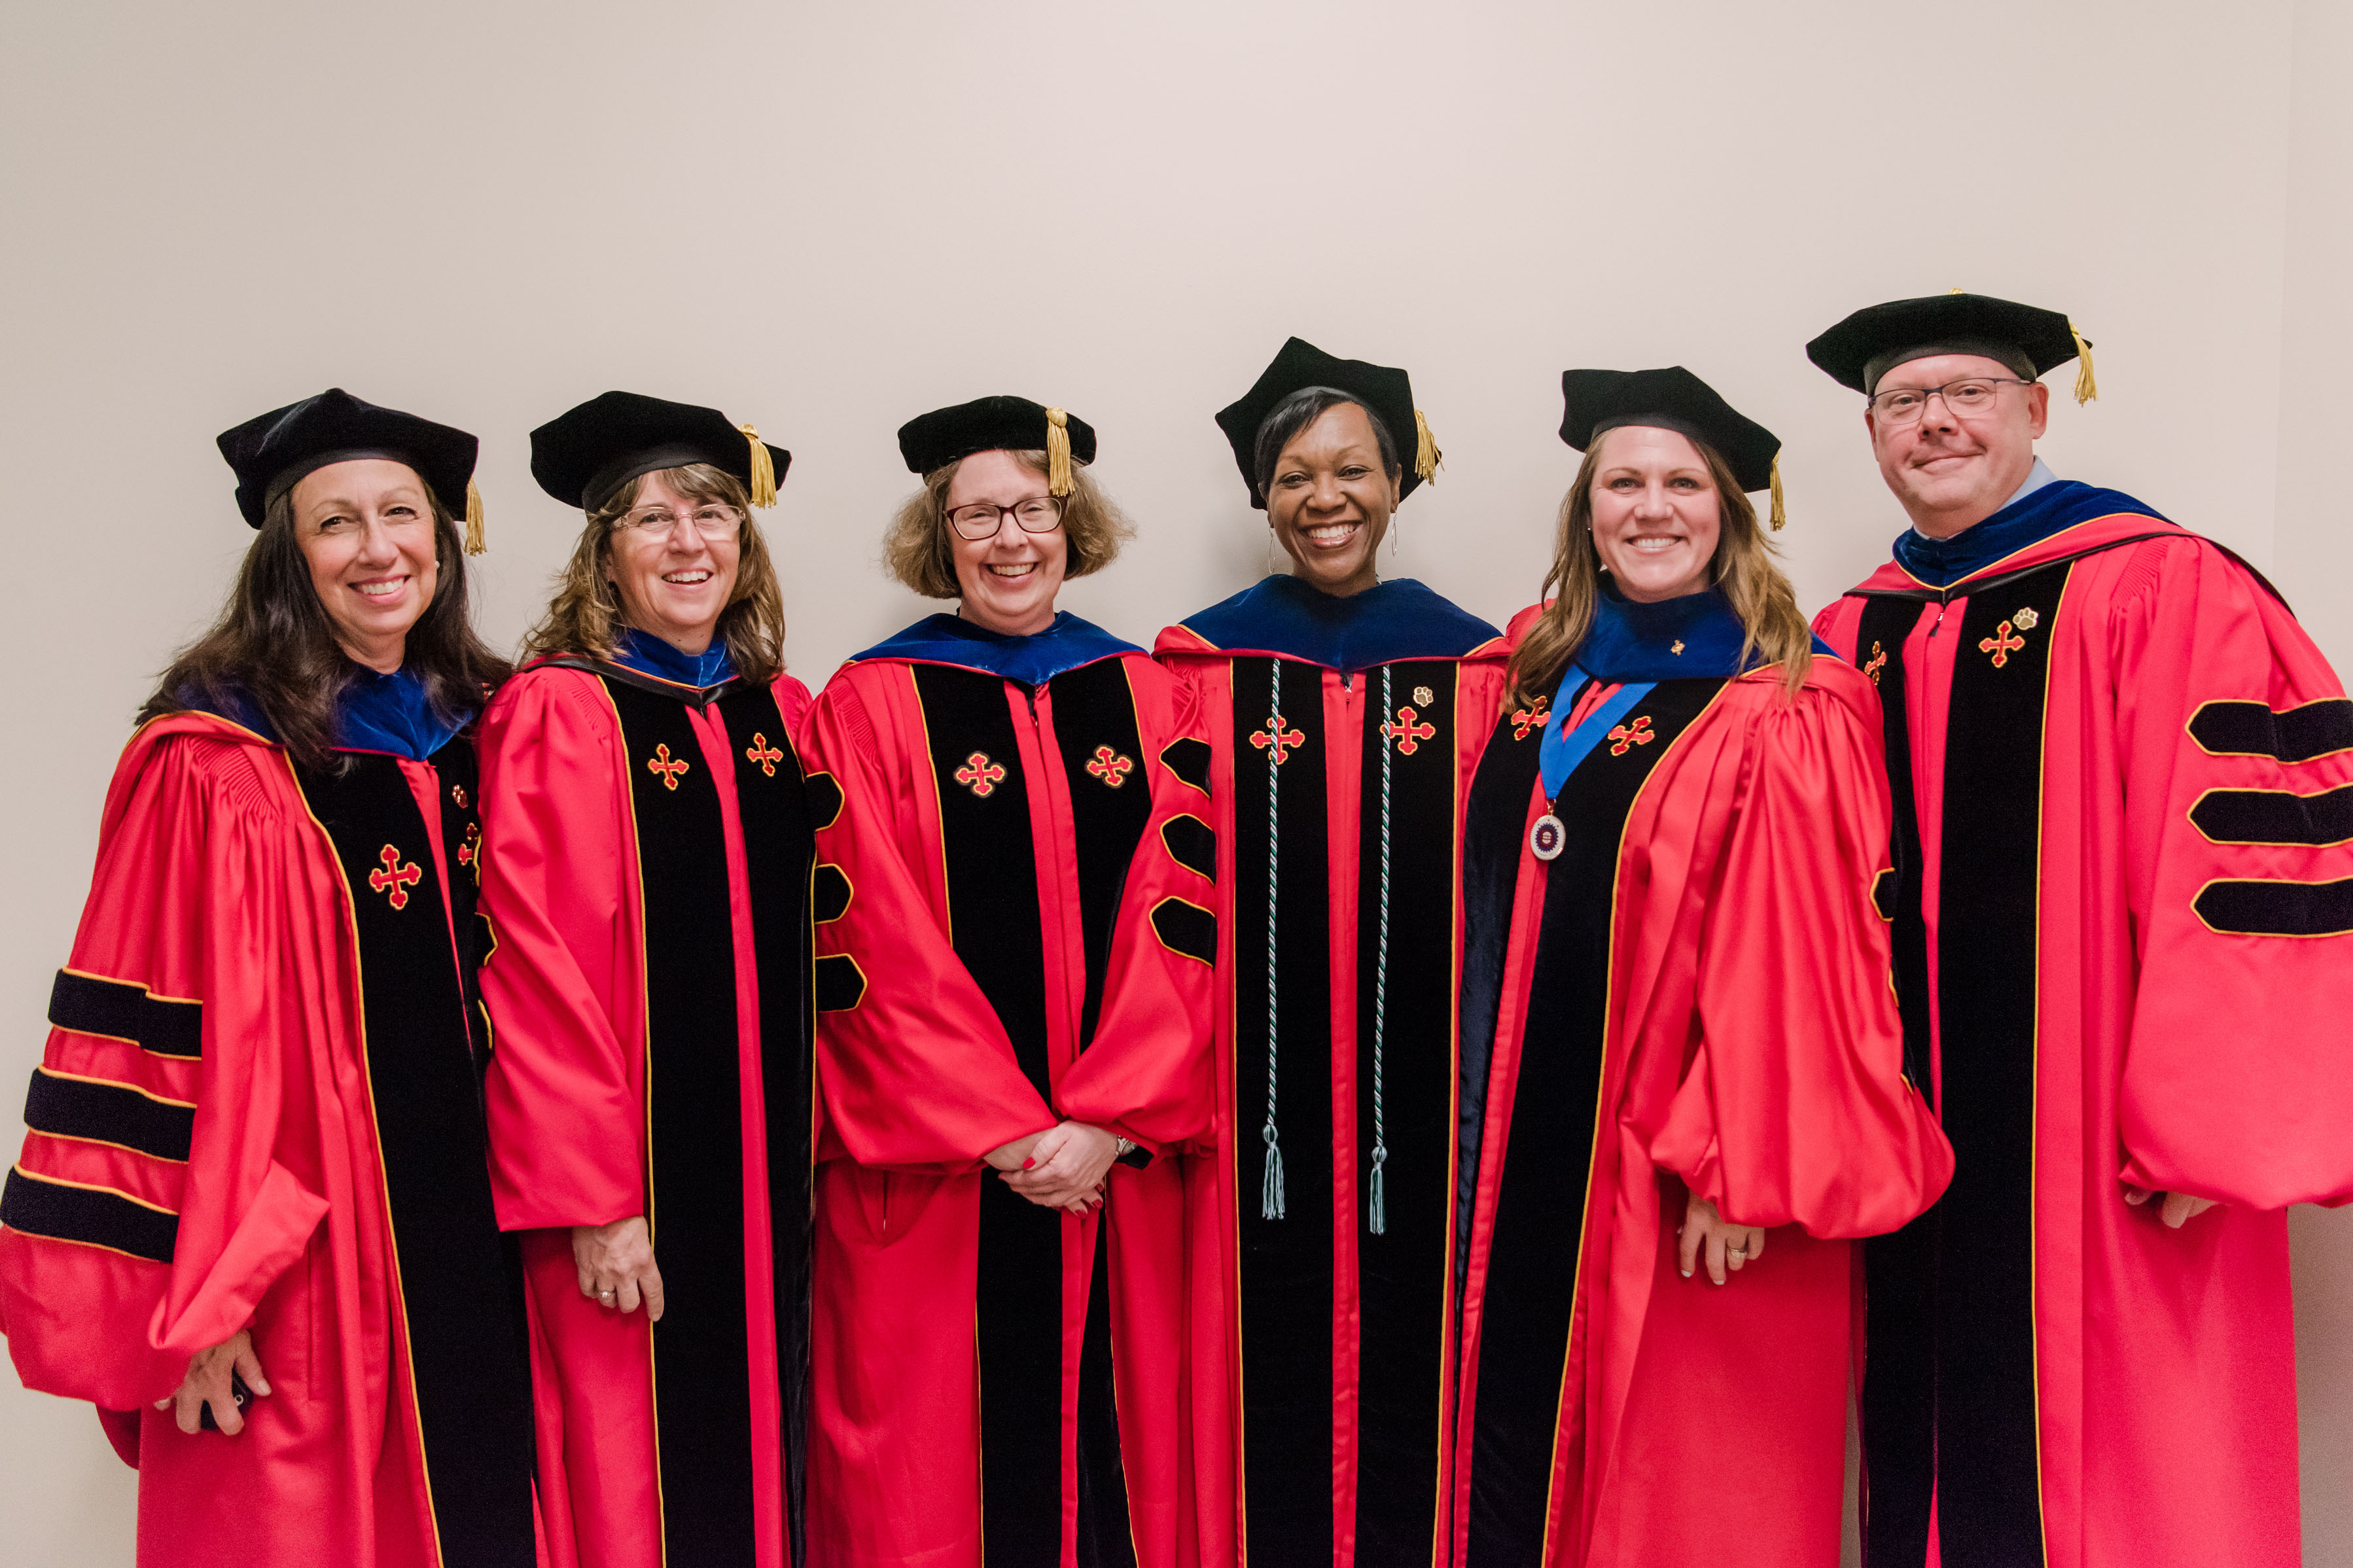 VP Nancy young and others pose and smile together in red graduation regalia